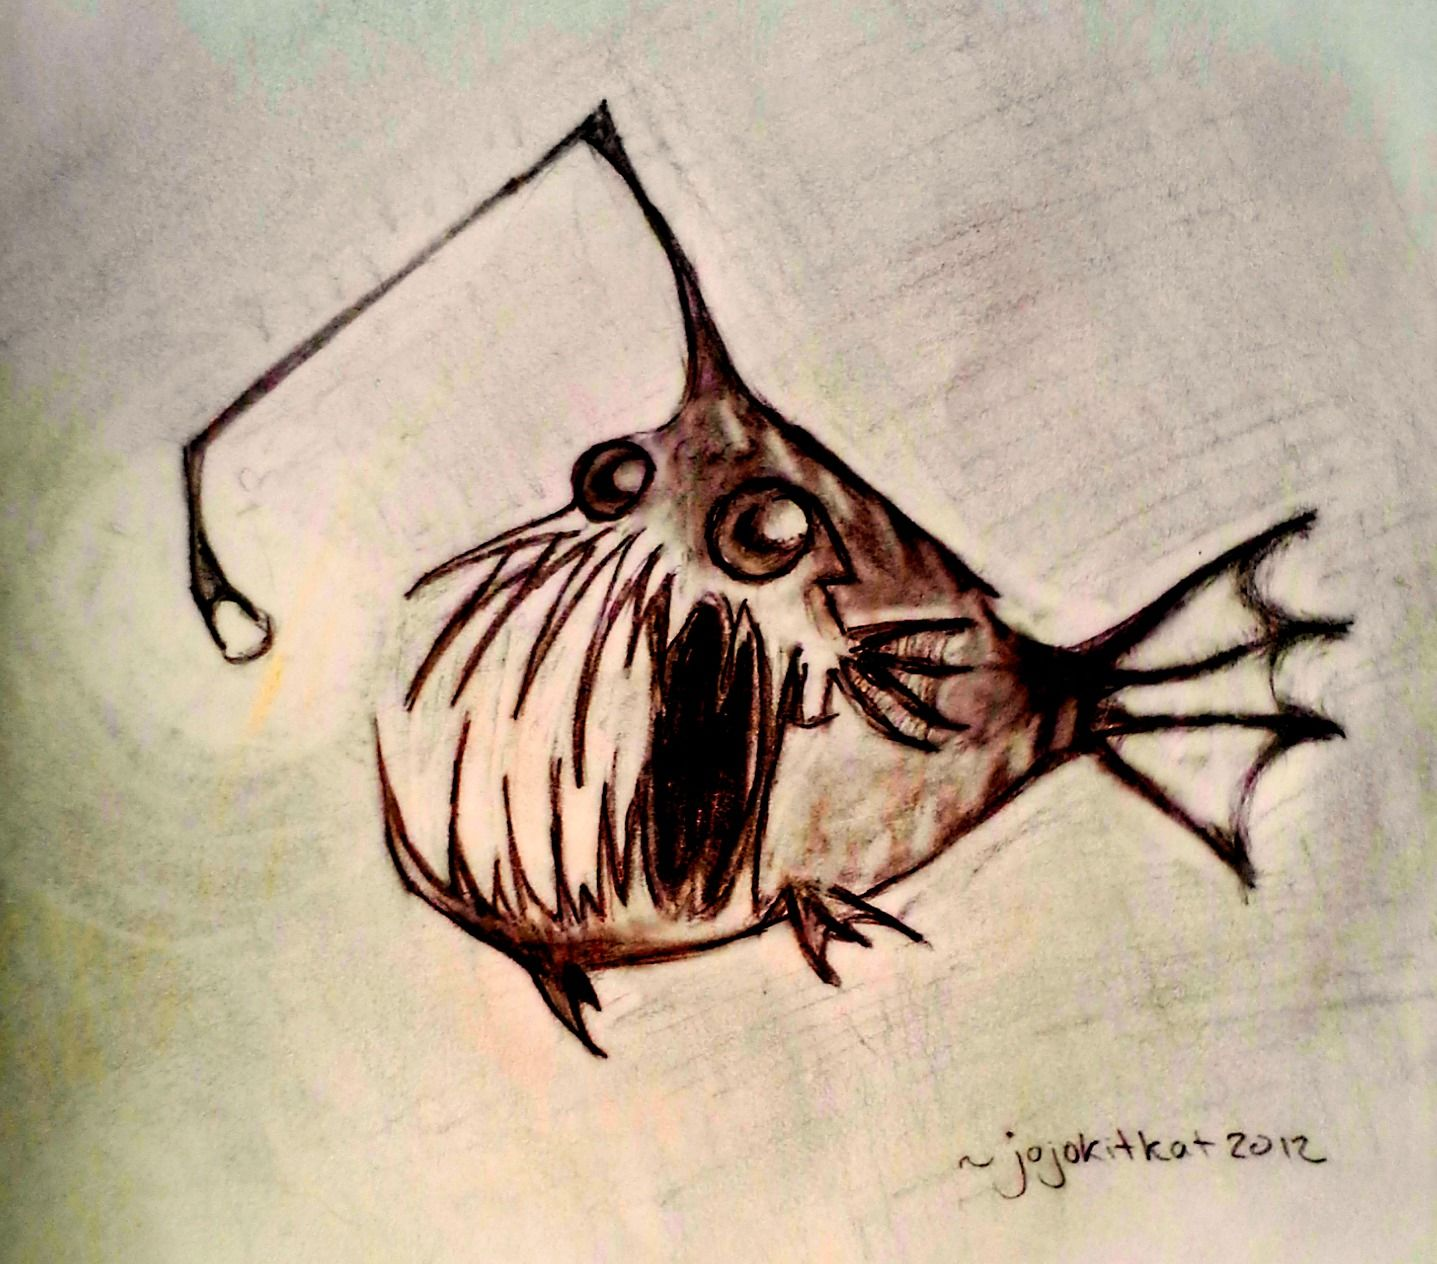 angler fish in charcoal / conte